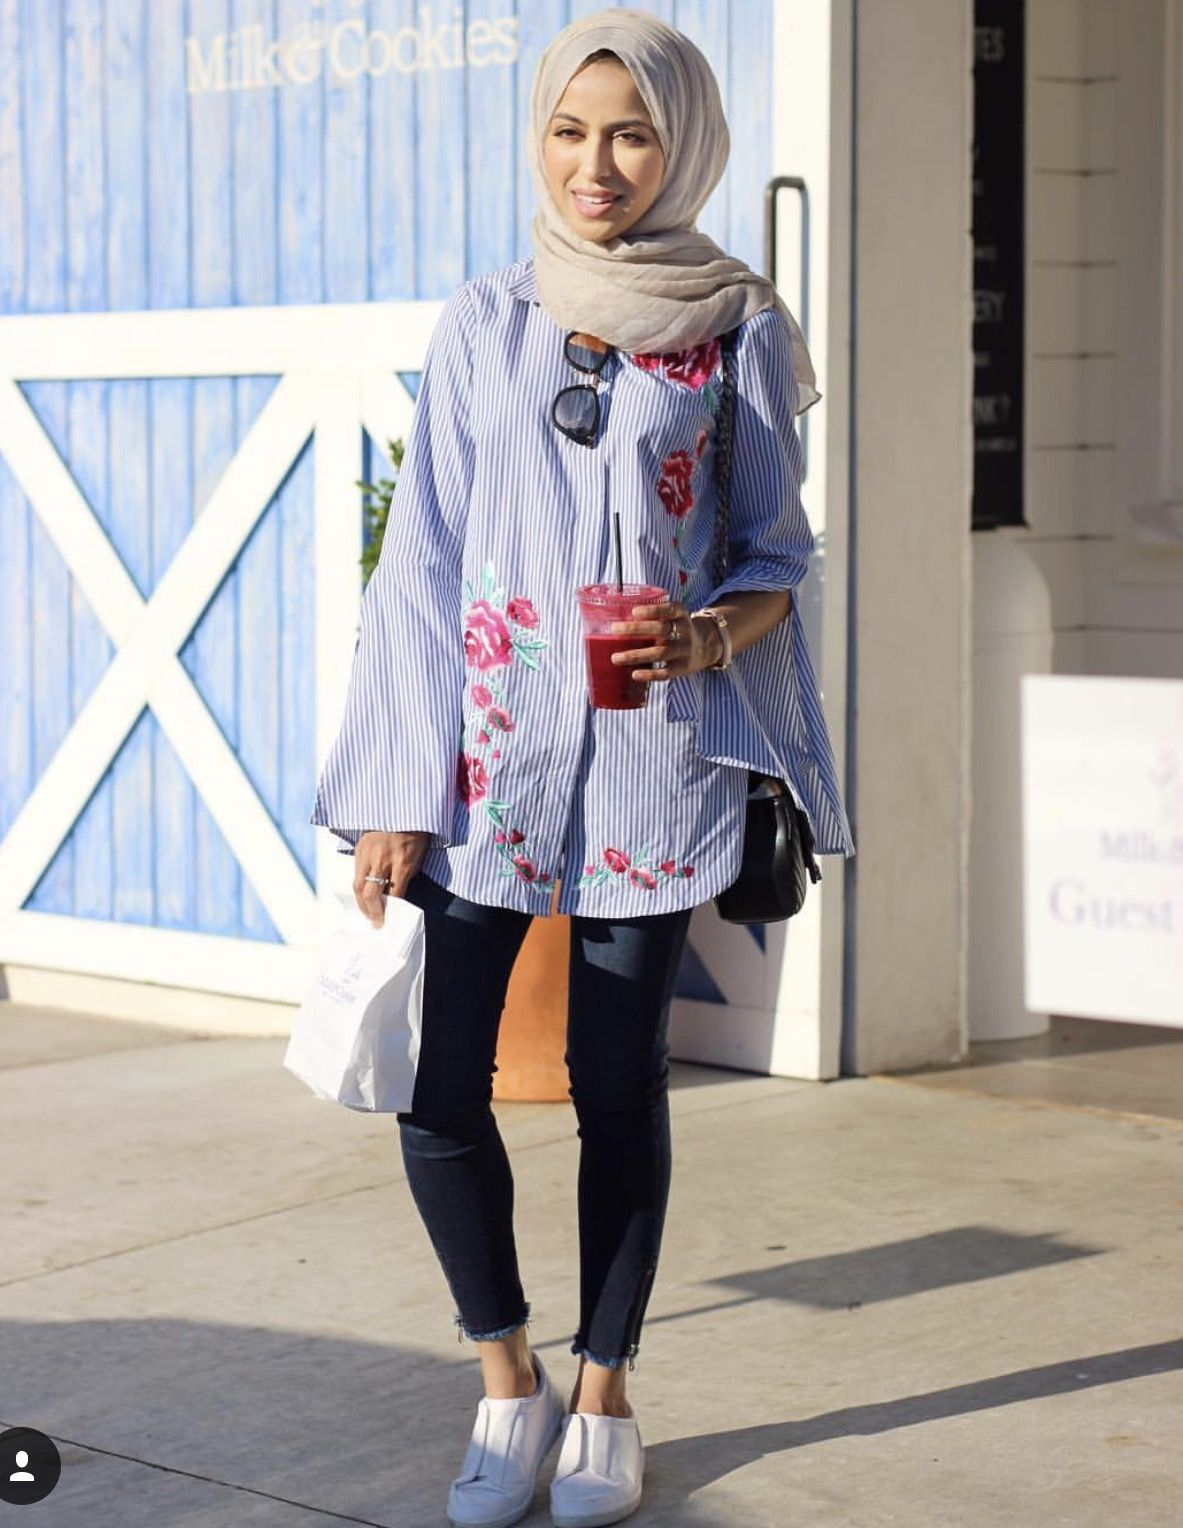 PINNED BY @MUSKAZJAHAN -  Hijab outfit, Hijab fashion, Fashion